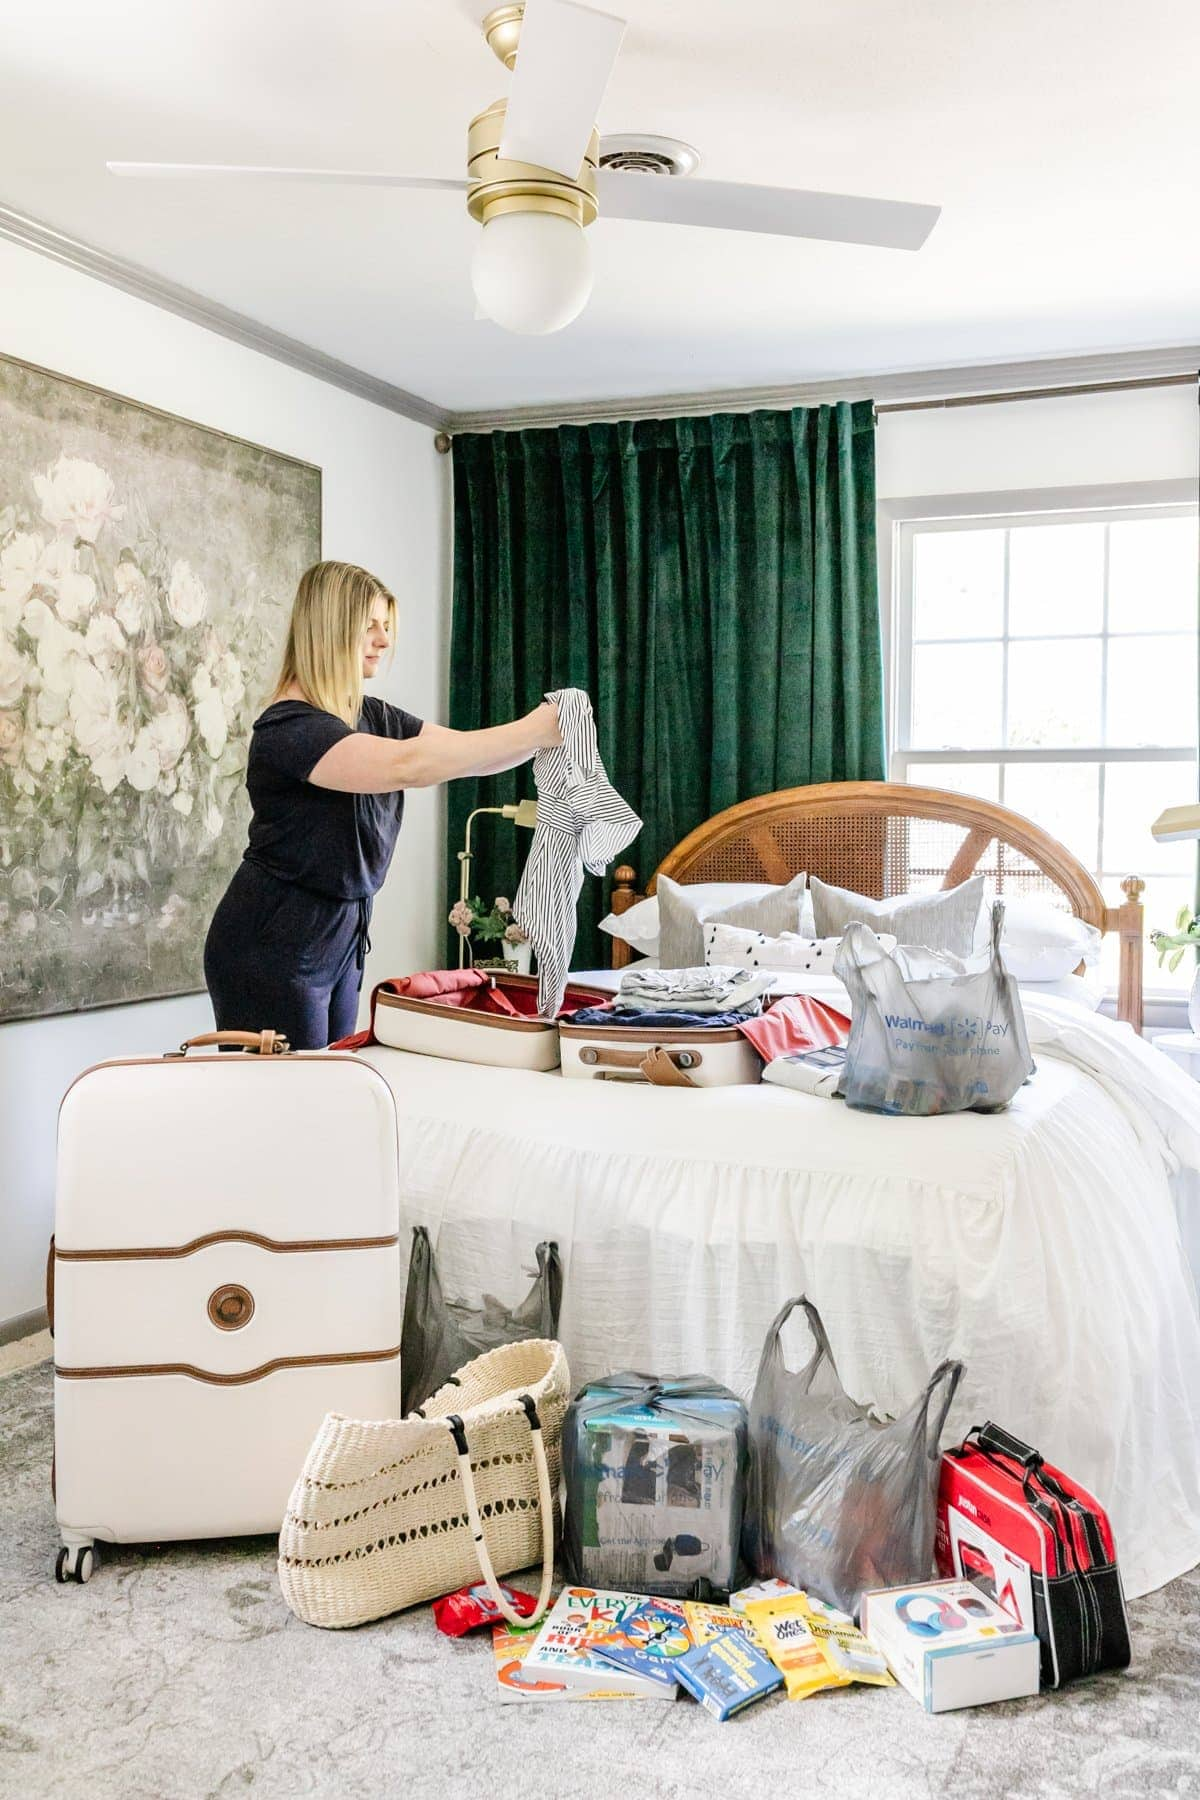 packing a suitcase with travel essentials